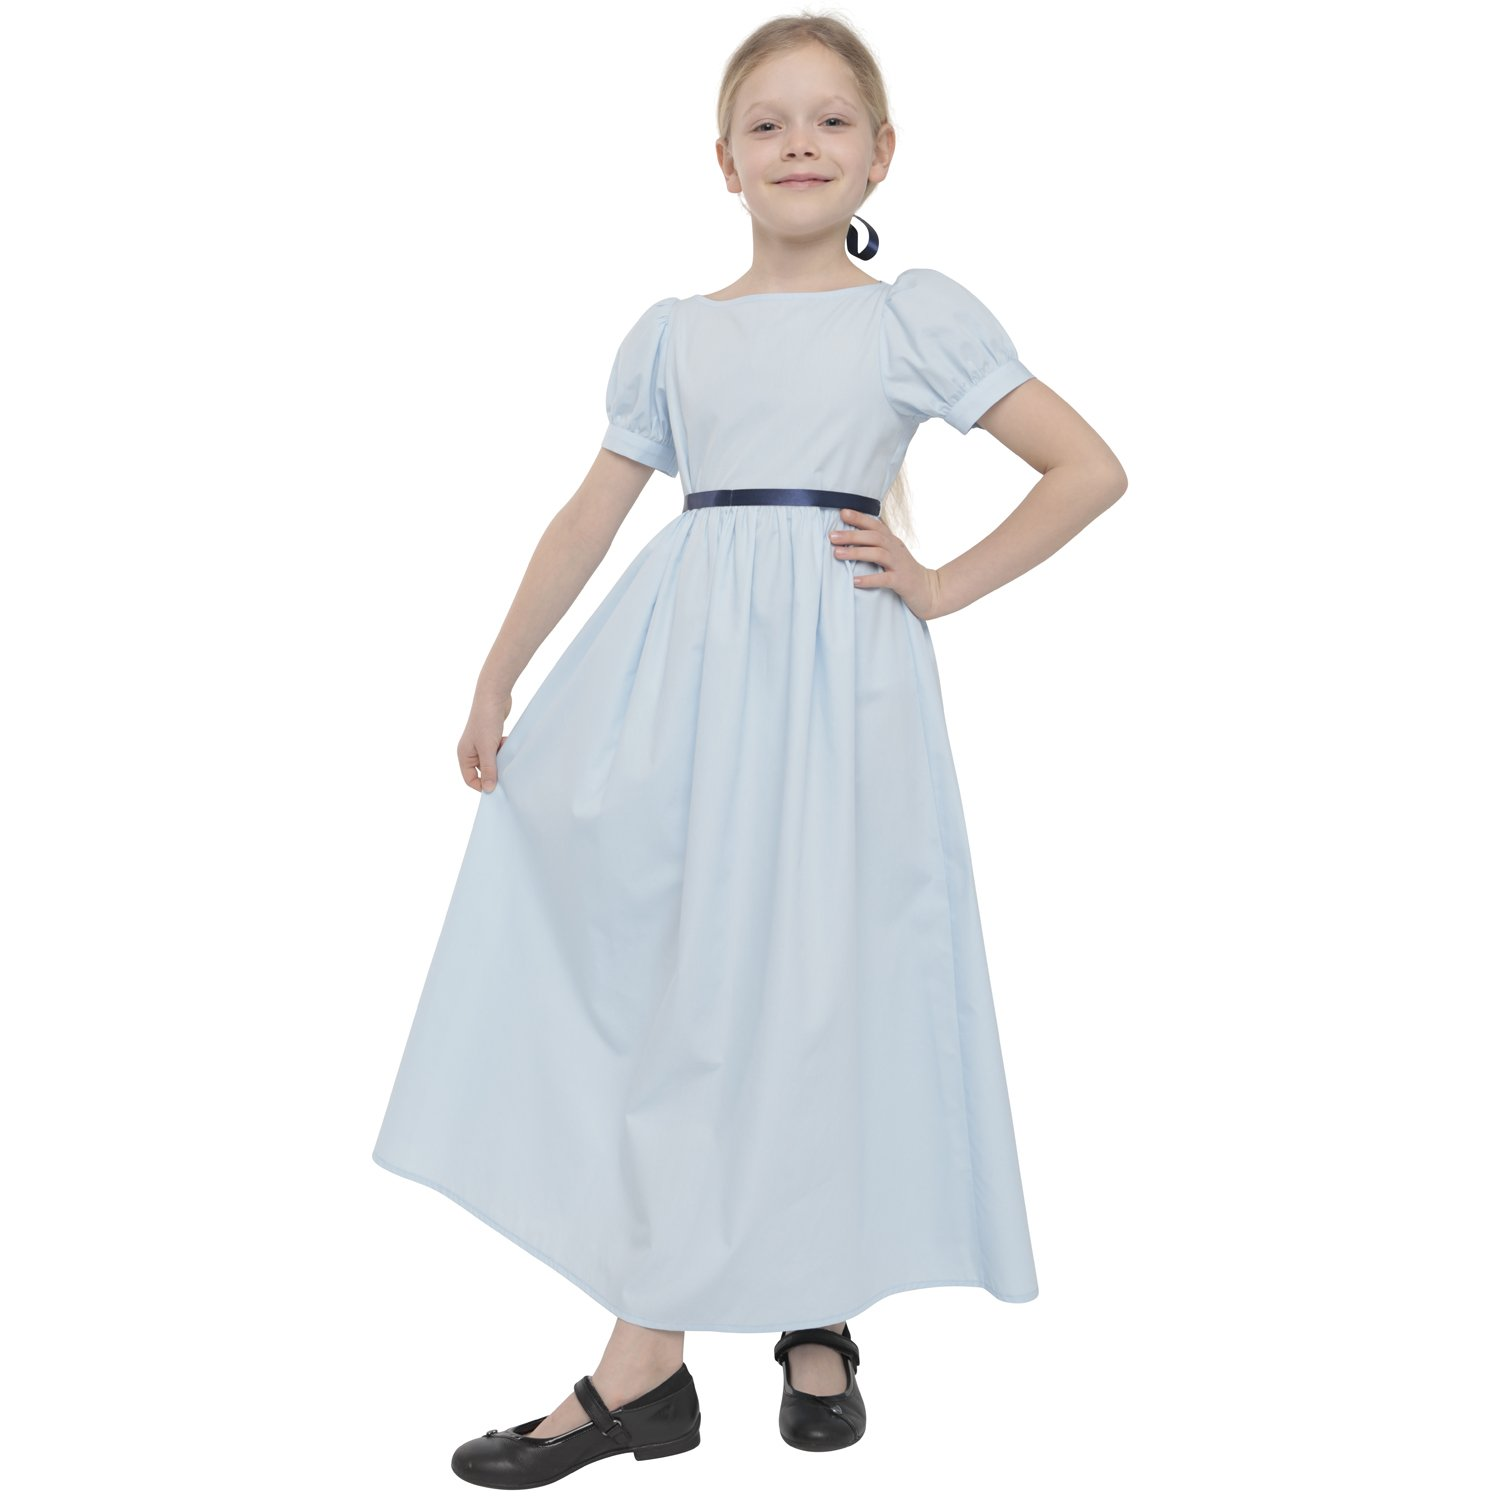 World Book Day WENDY PETER PAN Victorian COTTON NIGHTDRESS All Ages//Sizes